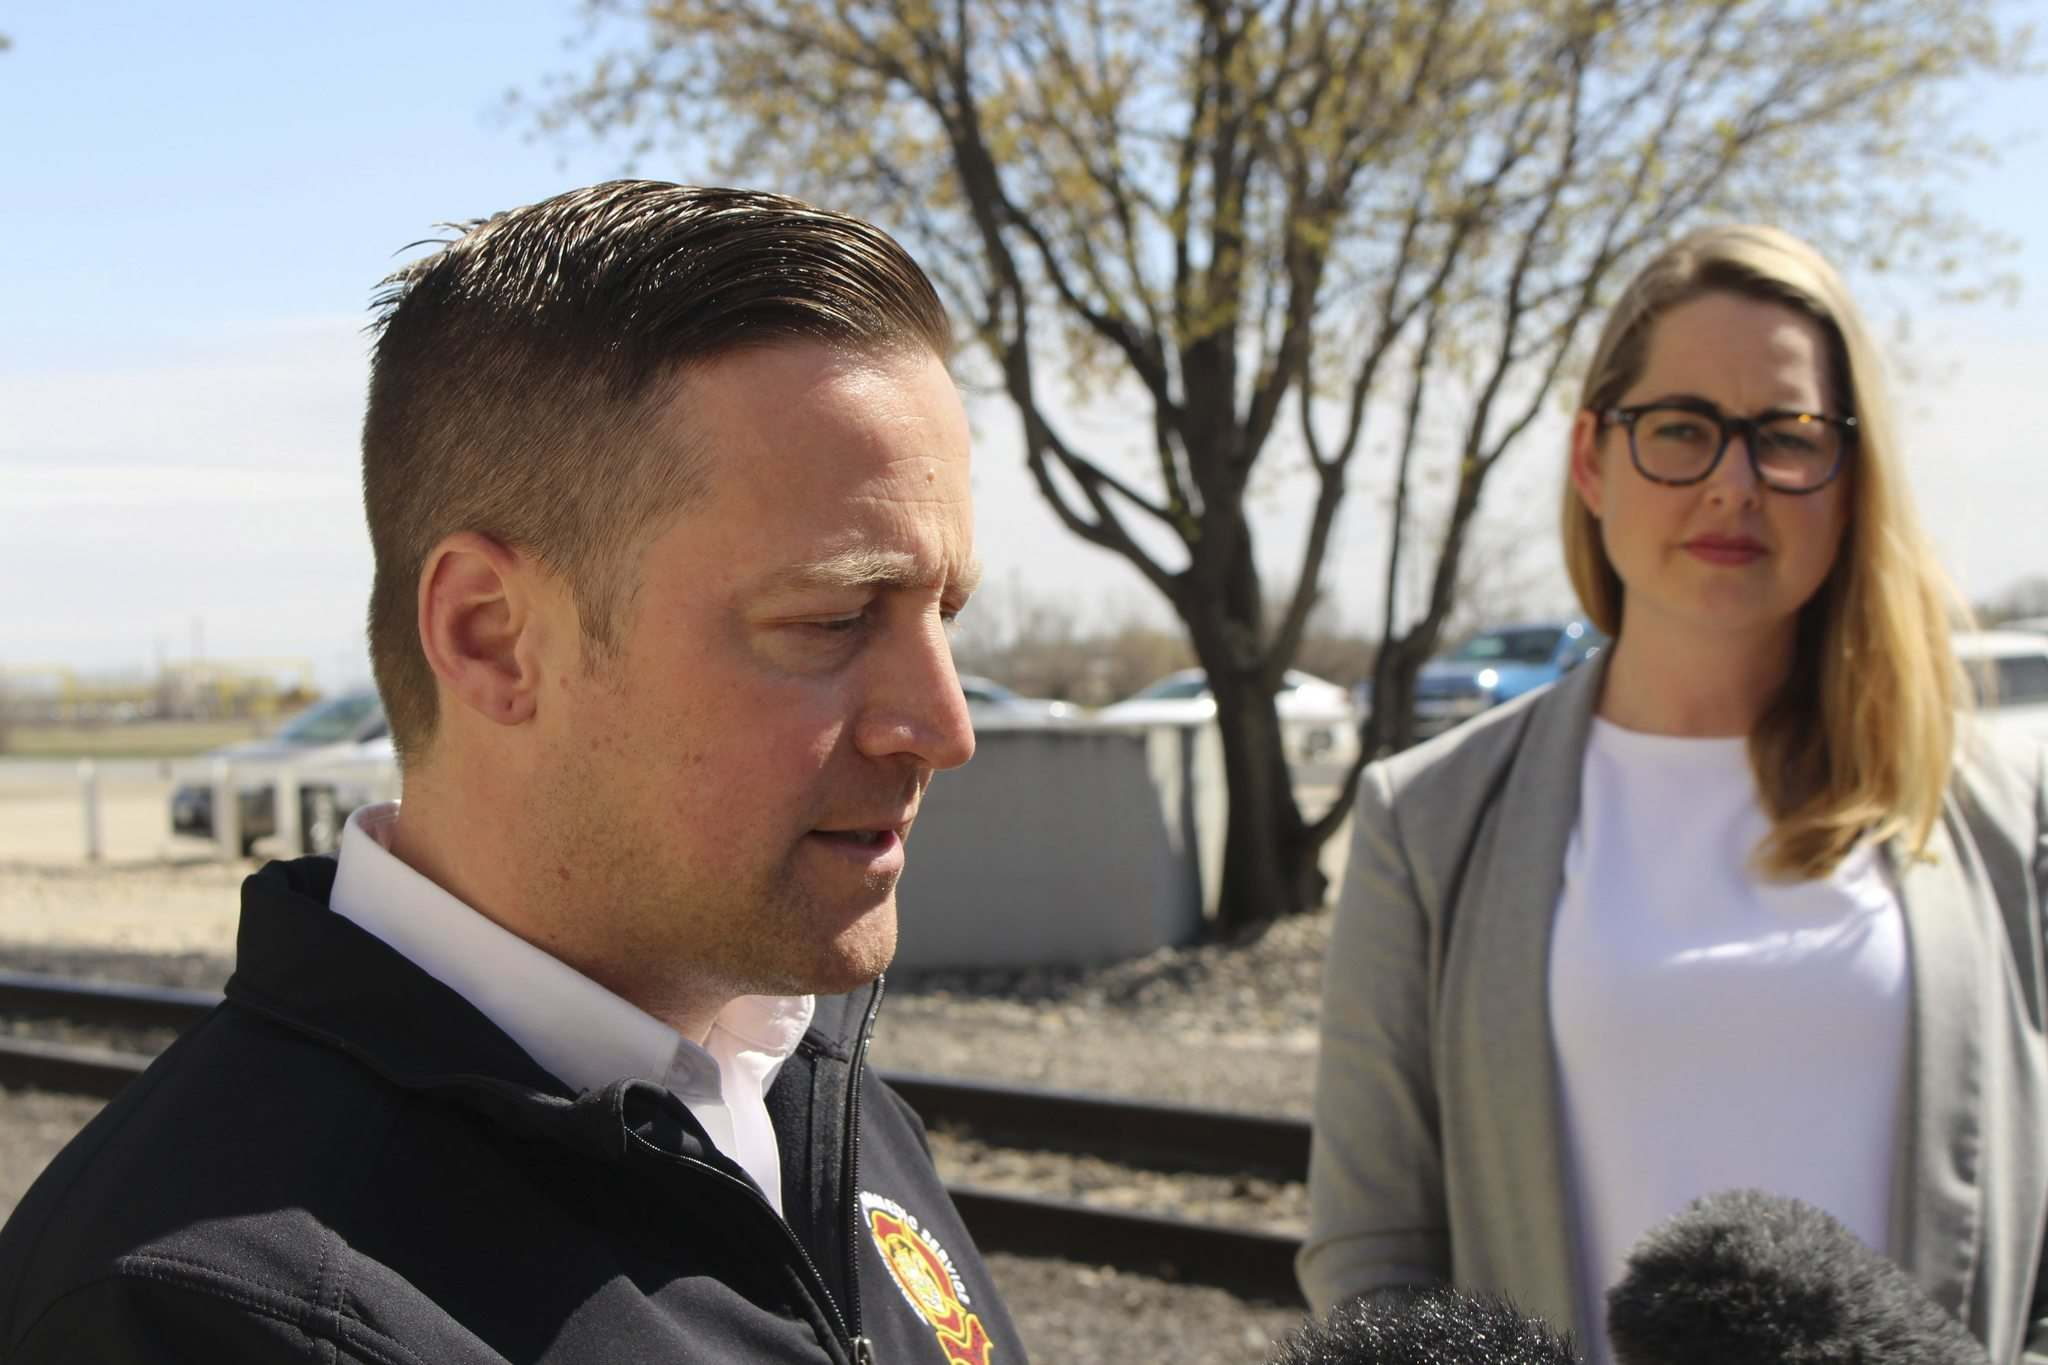 RYAN THORPE / WINNIPEG FREE PRESS</p><p>Tom Wallace, WFPS deputy chief, speaks to reporters Wednesday, following a meeting with the Canadian National Railway about a recent spate of brush fires in Winnipeg - some of which were sparked near train tracks. In background: Kate Fenske, spokeswoman for CNR.</p>